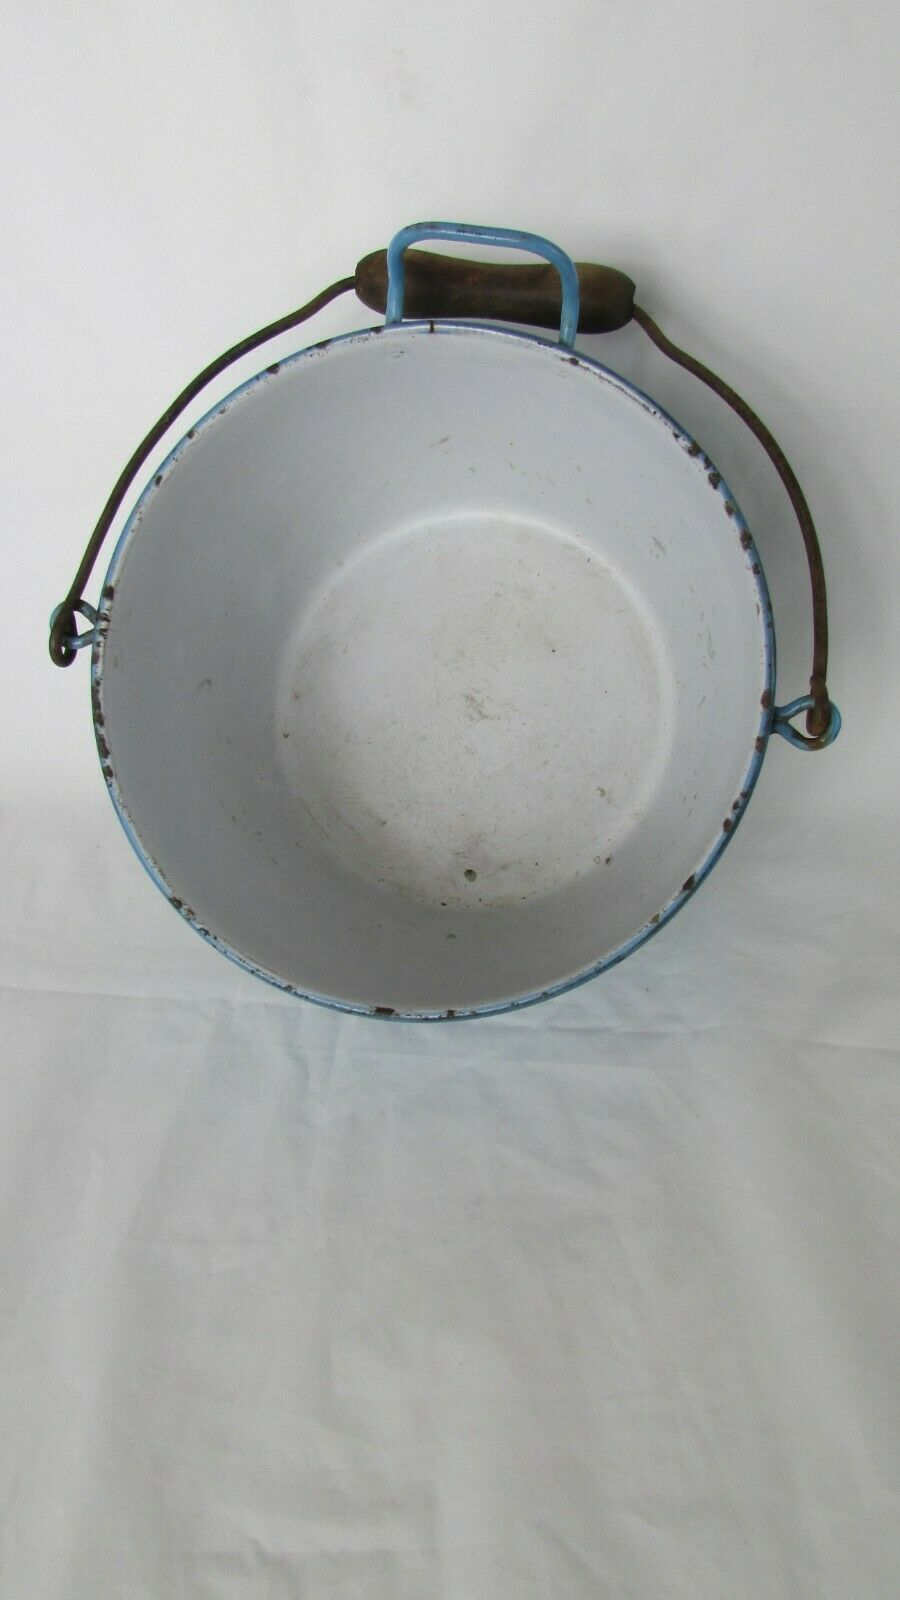 Vintage Enamel  Pail Bucket Blue and White Enamelware With Wooden Handle image 12